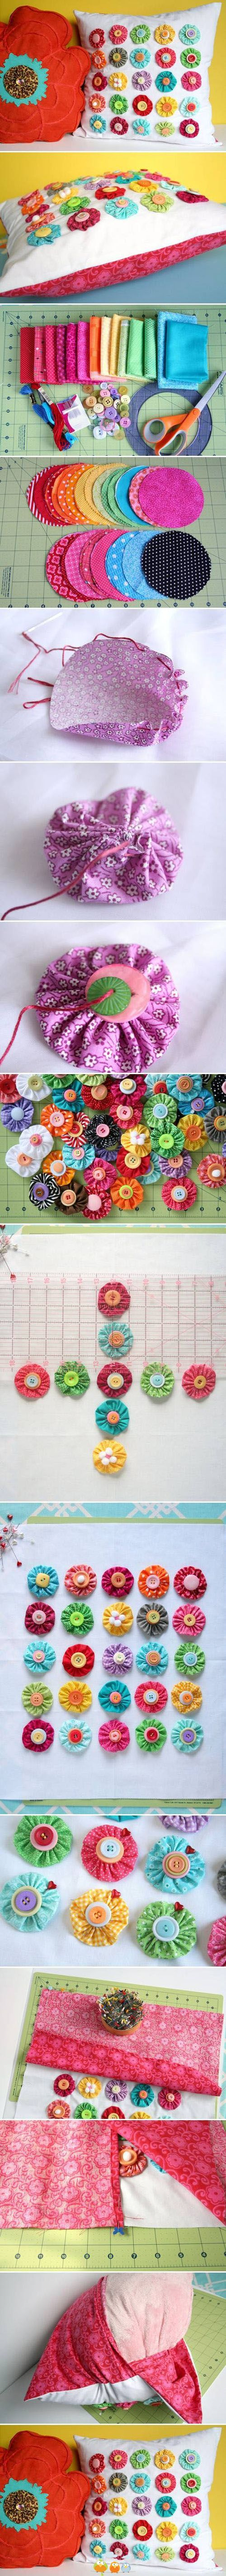 DIY Fabric Decorative Flowers flowers diy crafts home made easy crafts  craft idea crafts ideas diy ideas diy crafts diy idea do it yourself diy  projects diy  549 best SEWING  Scrap Inspiration images on Pinterest   Sewing  . Pinterest Sewing Ideas For The Home. Home Design Ideas